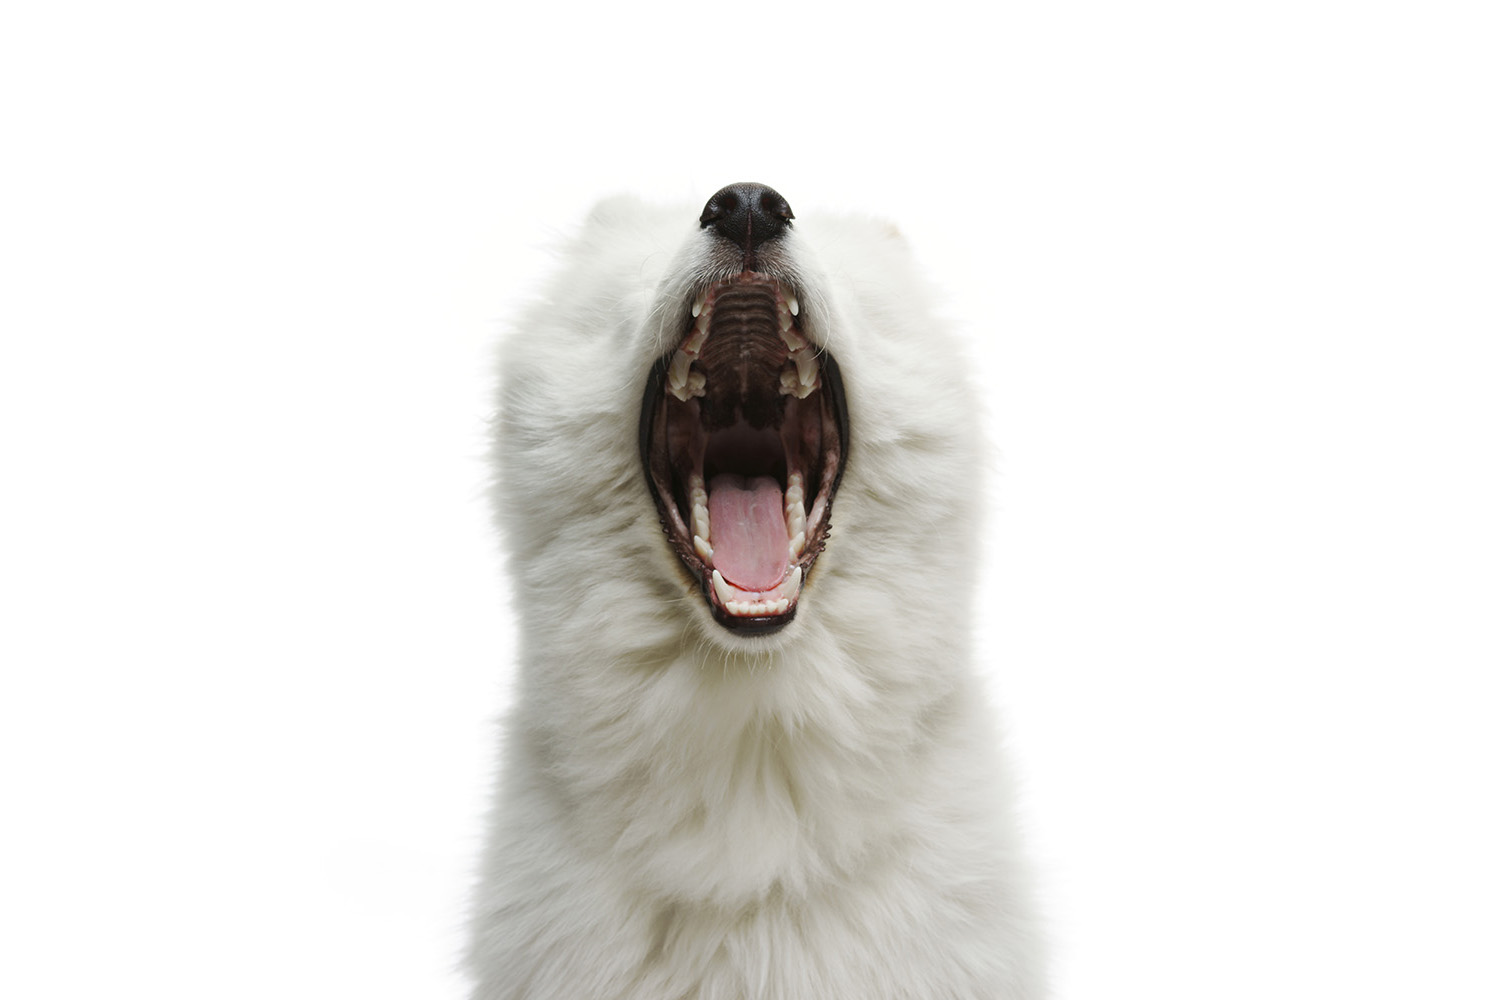 White samoyed dog portrait in the studio, white background.